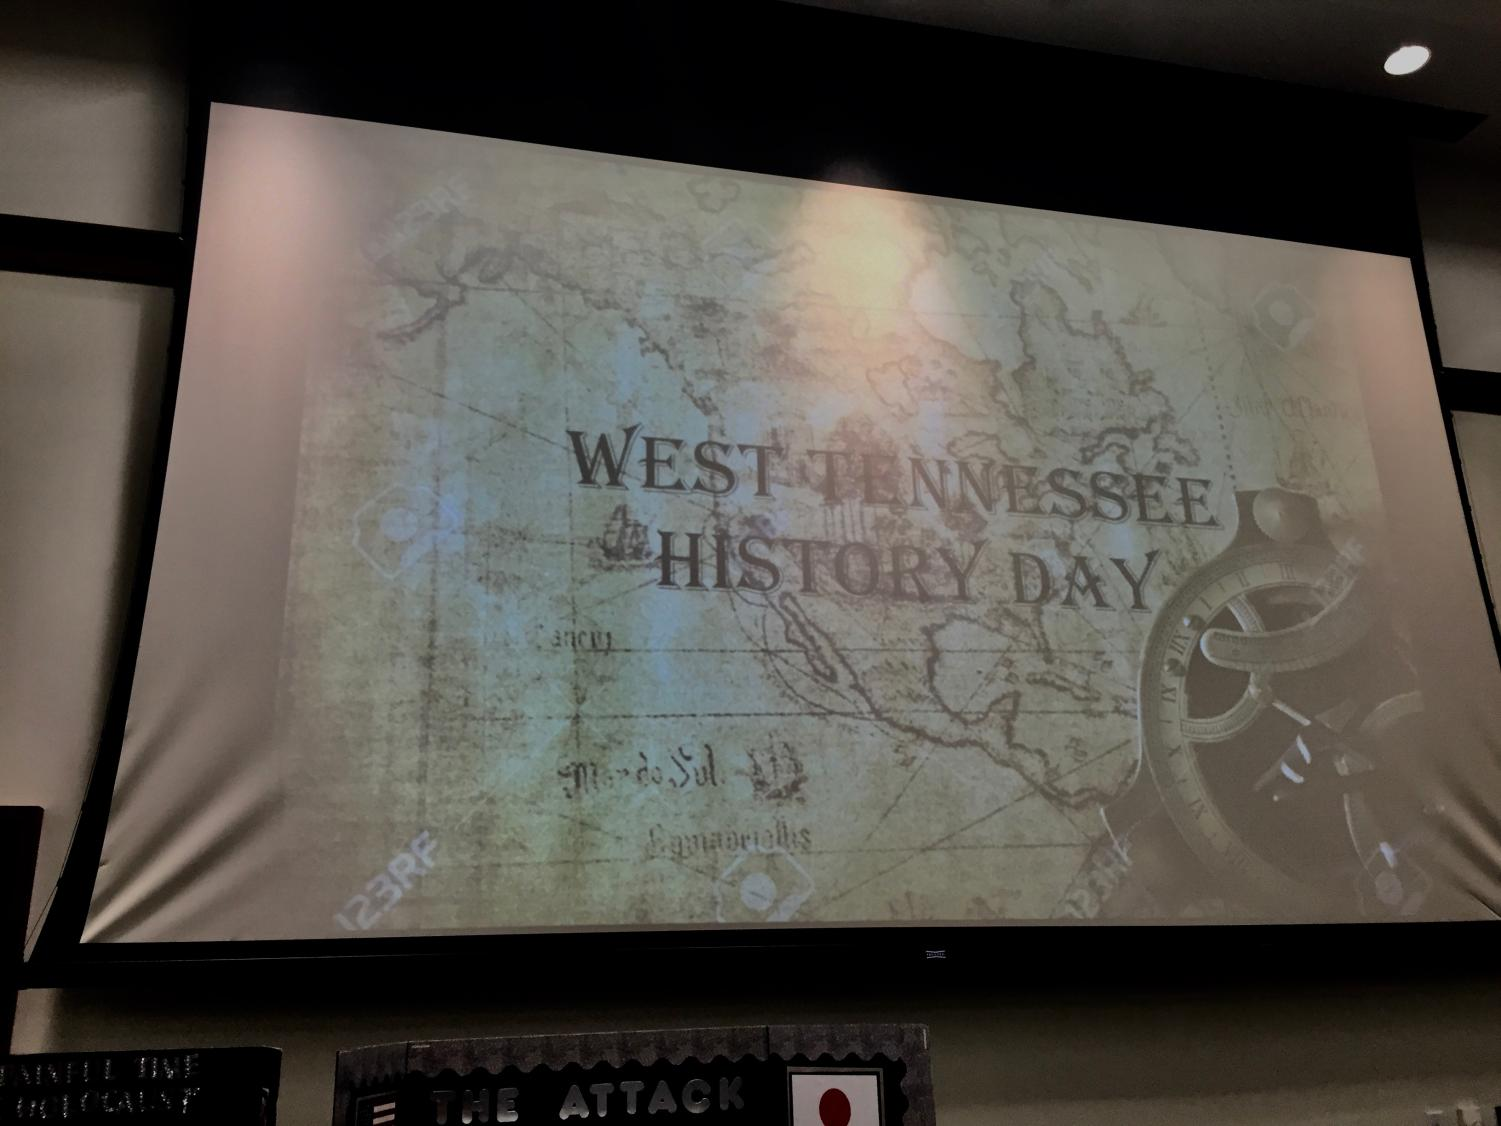 The West Tennessee History Day presentation was shown in the exhibit room.